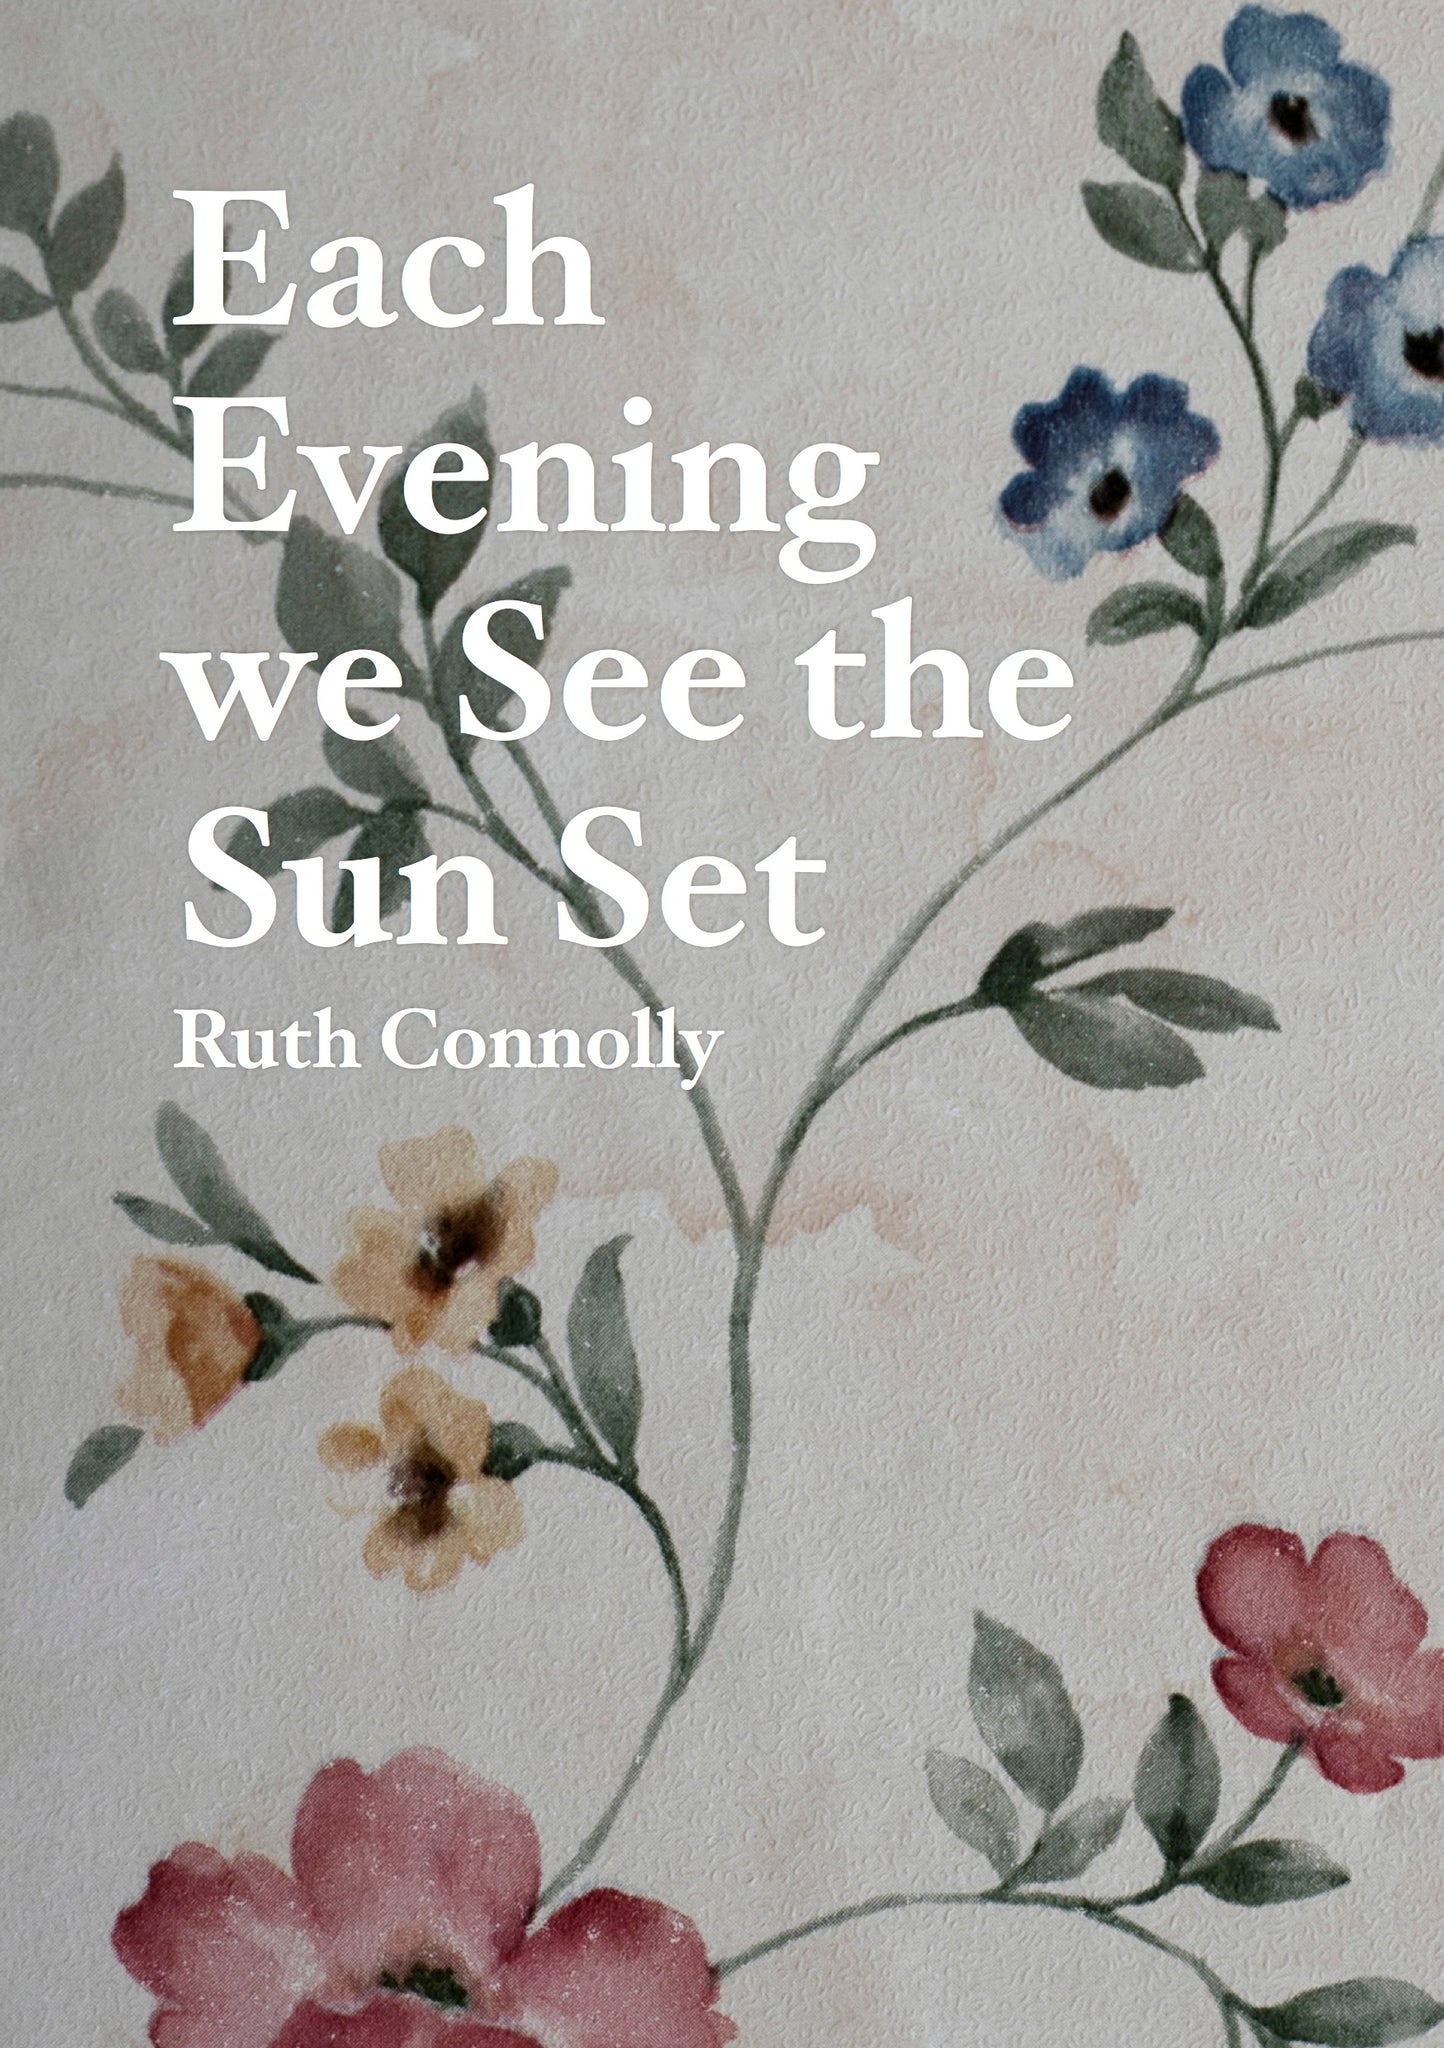 Each Evening We See the Sun Set, Ruth Connolly - The Library Project